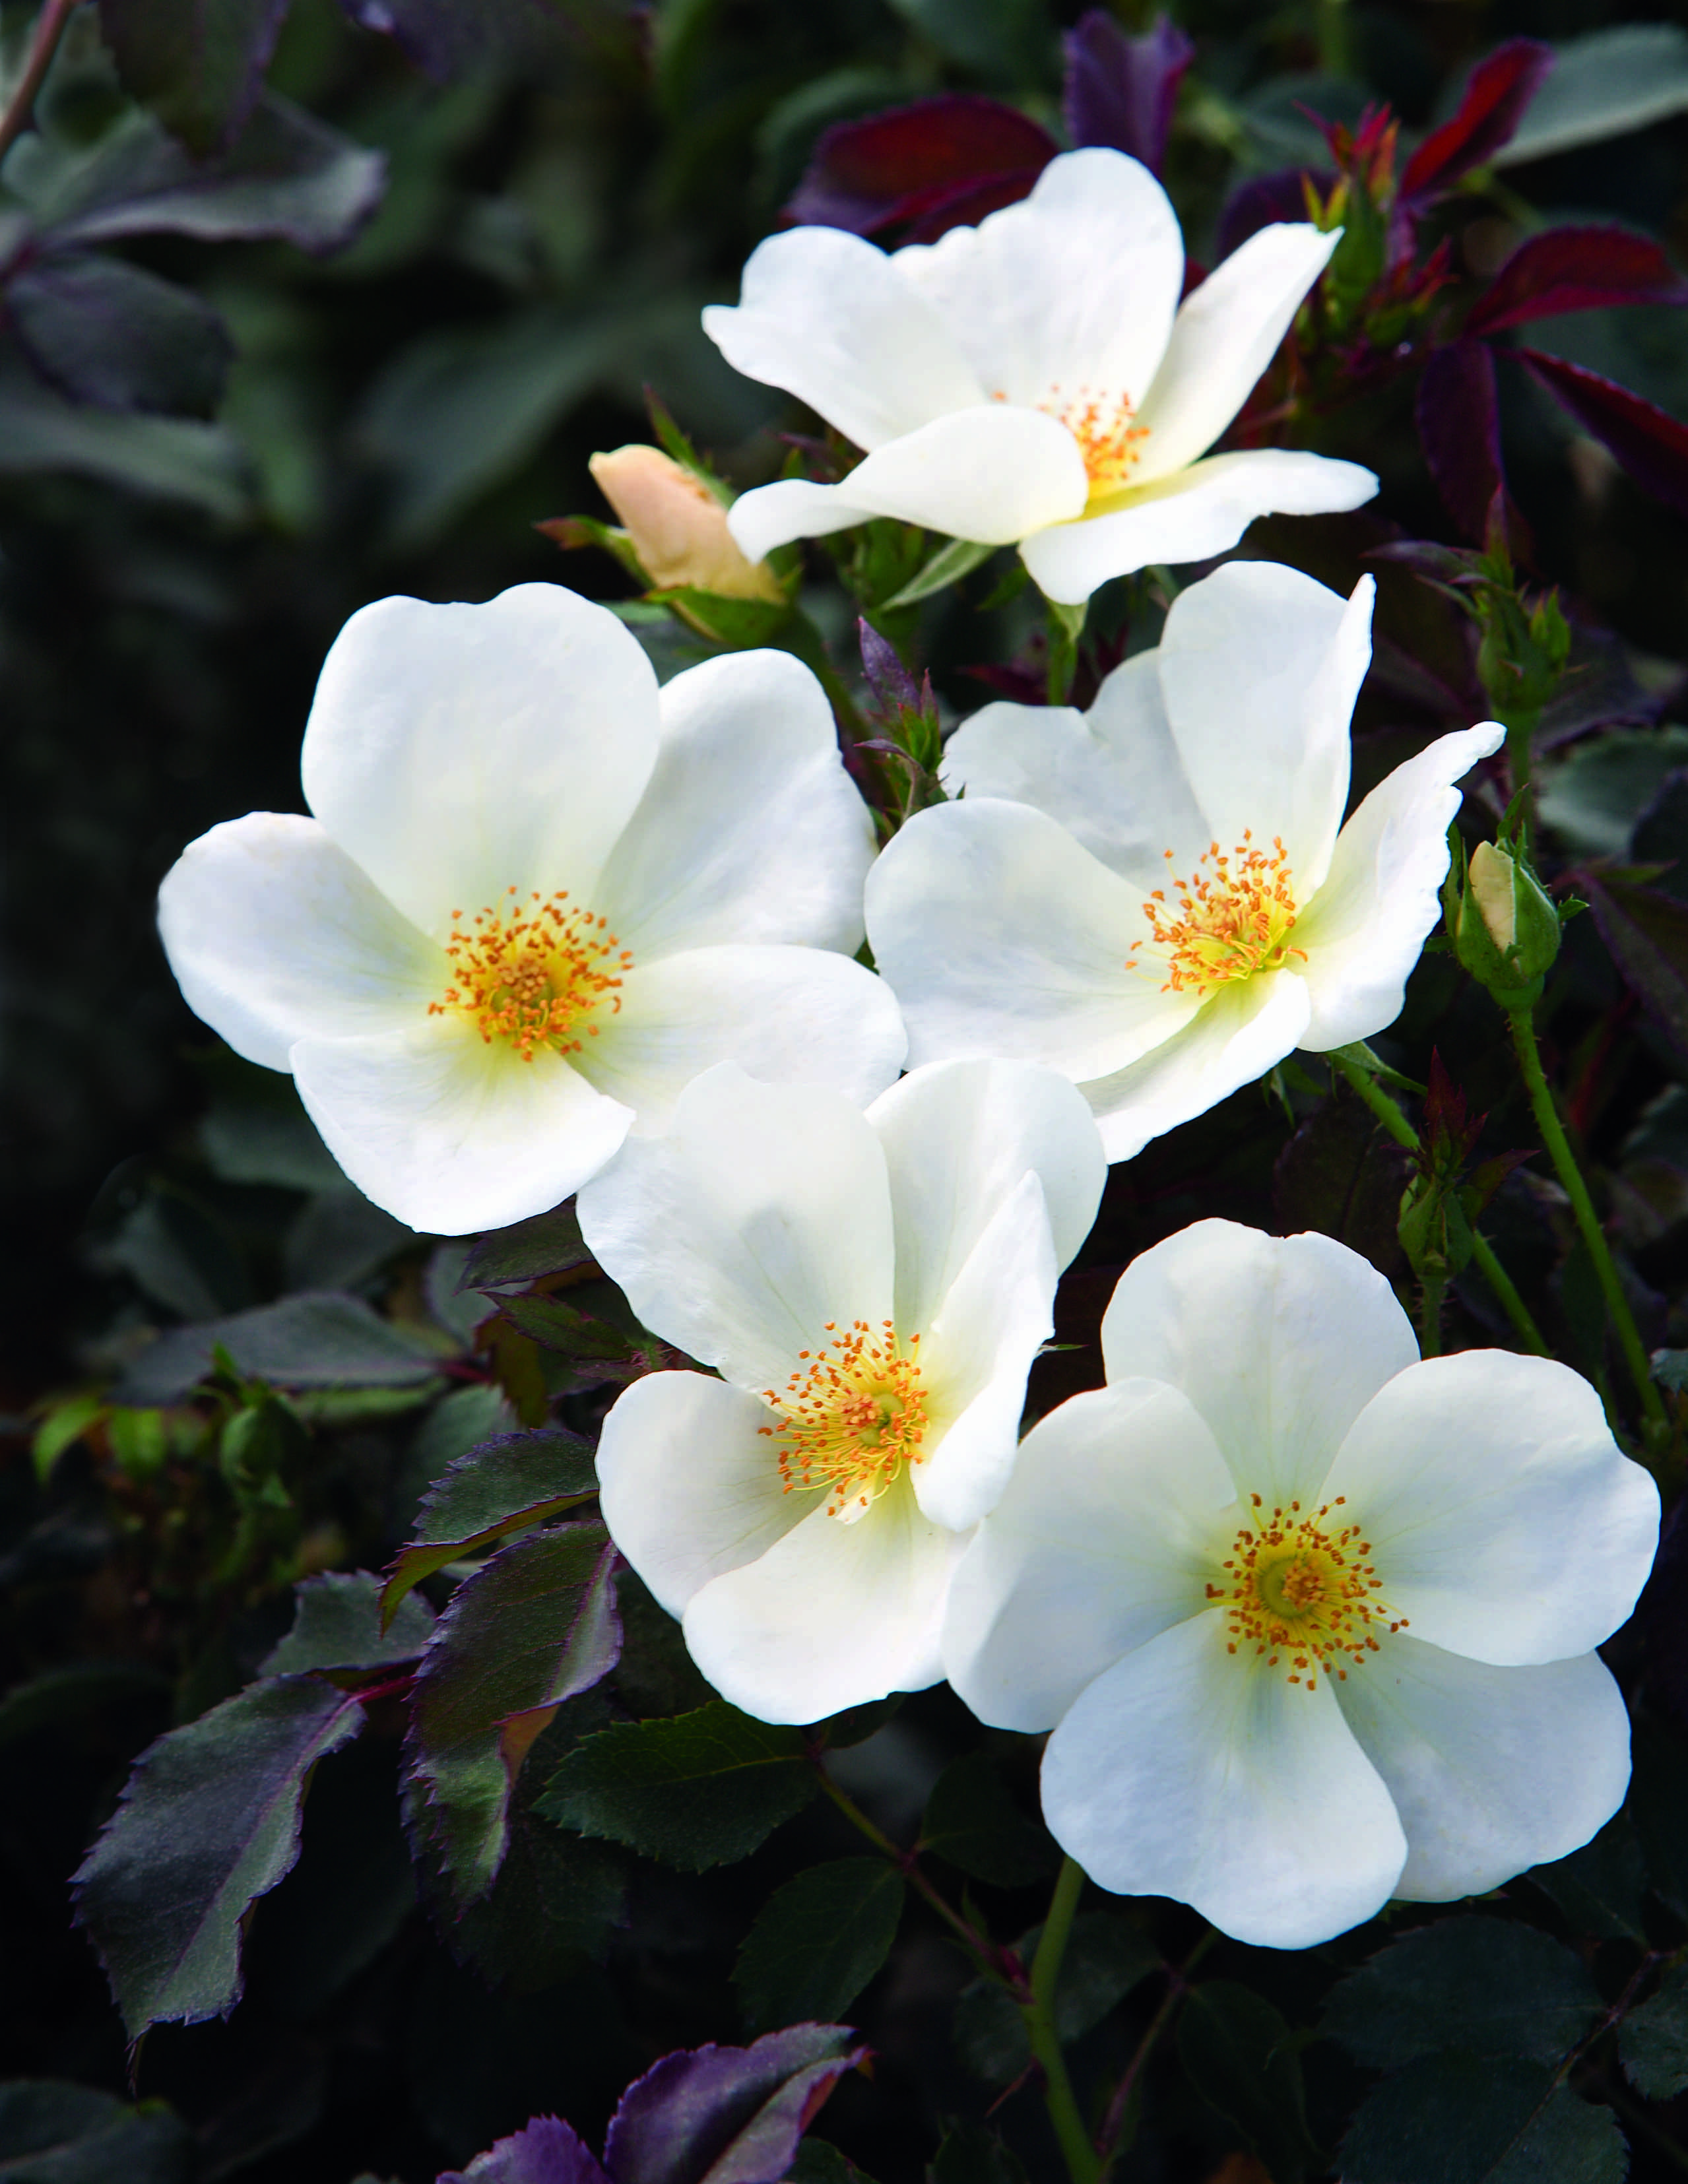 Roses In Garden: Knock Out Family Of Roses Grows With Three More Members